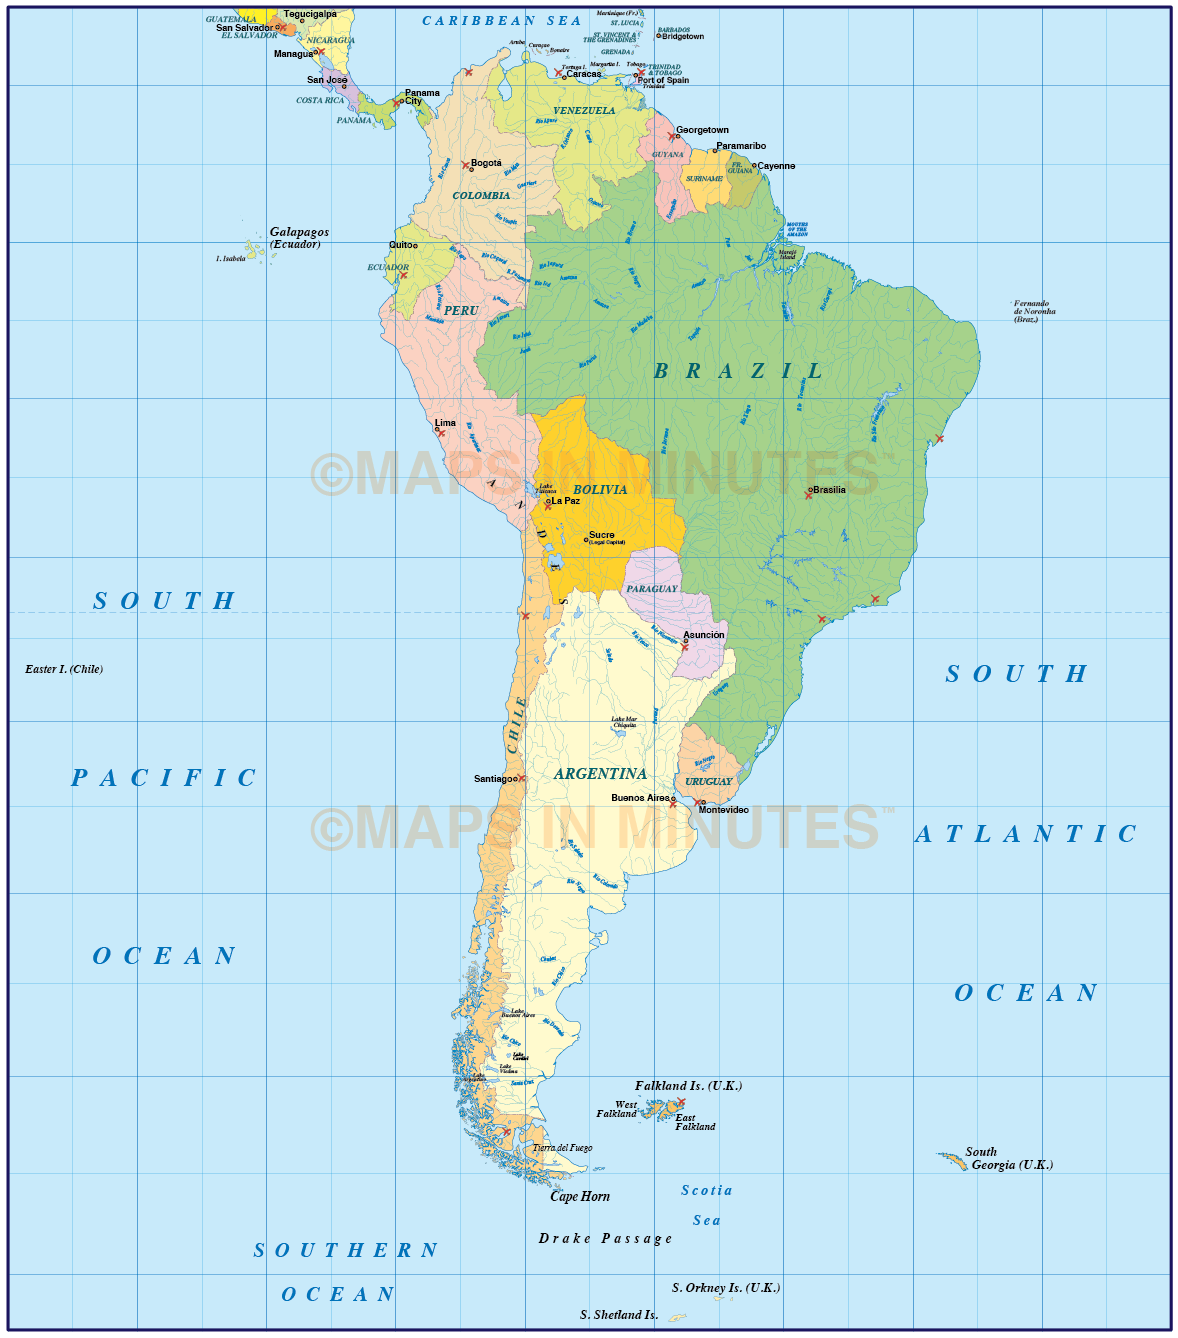 south america map clipart - photo #25